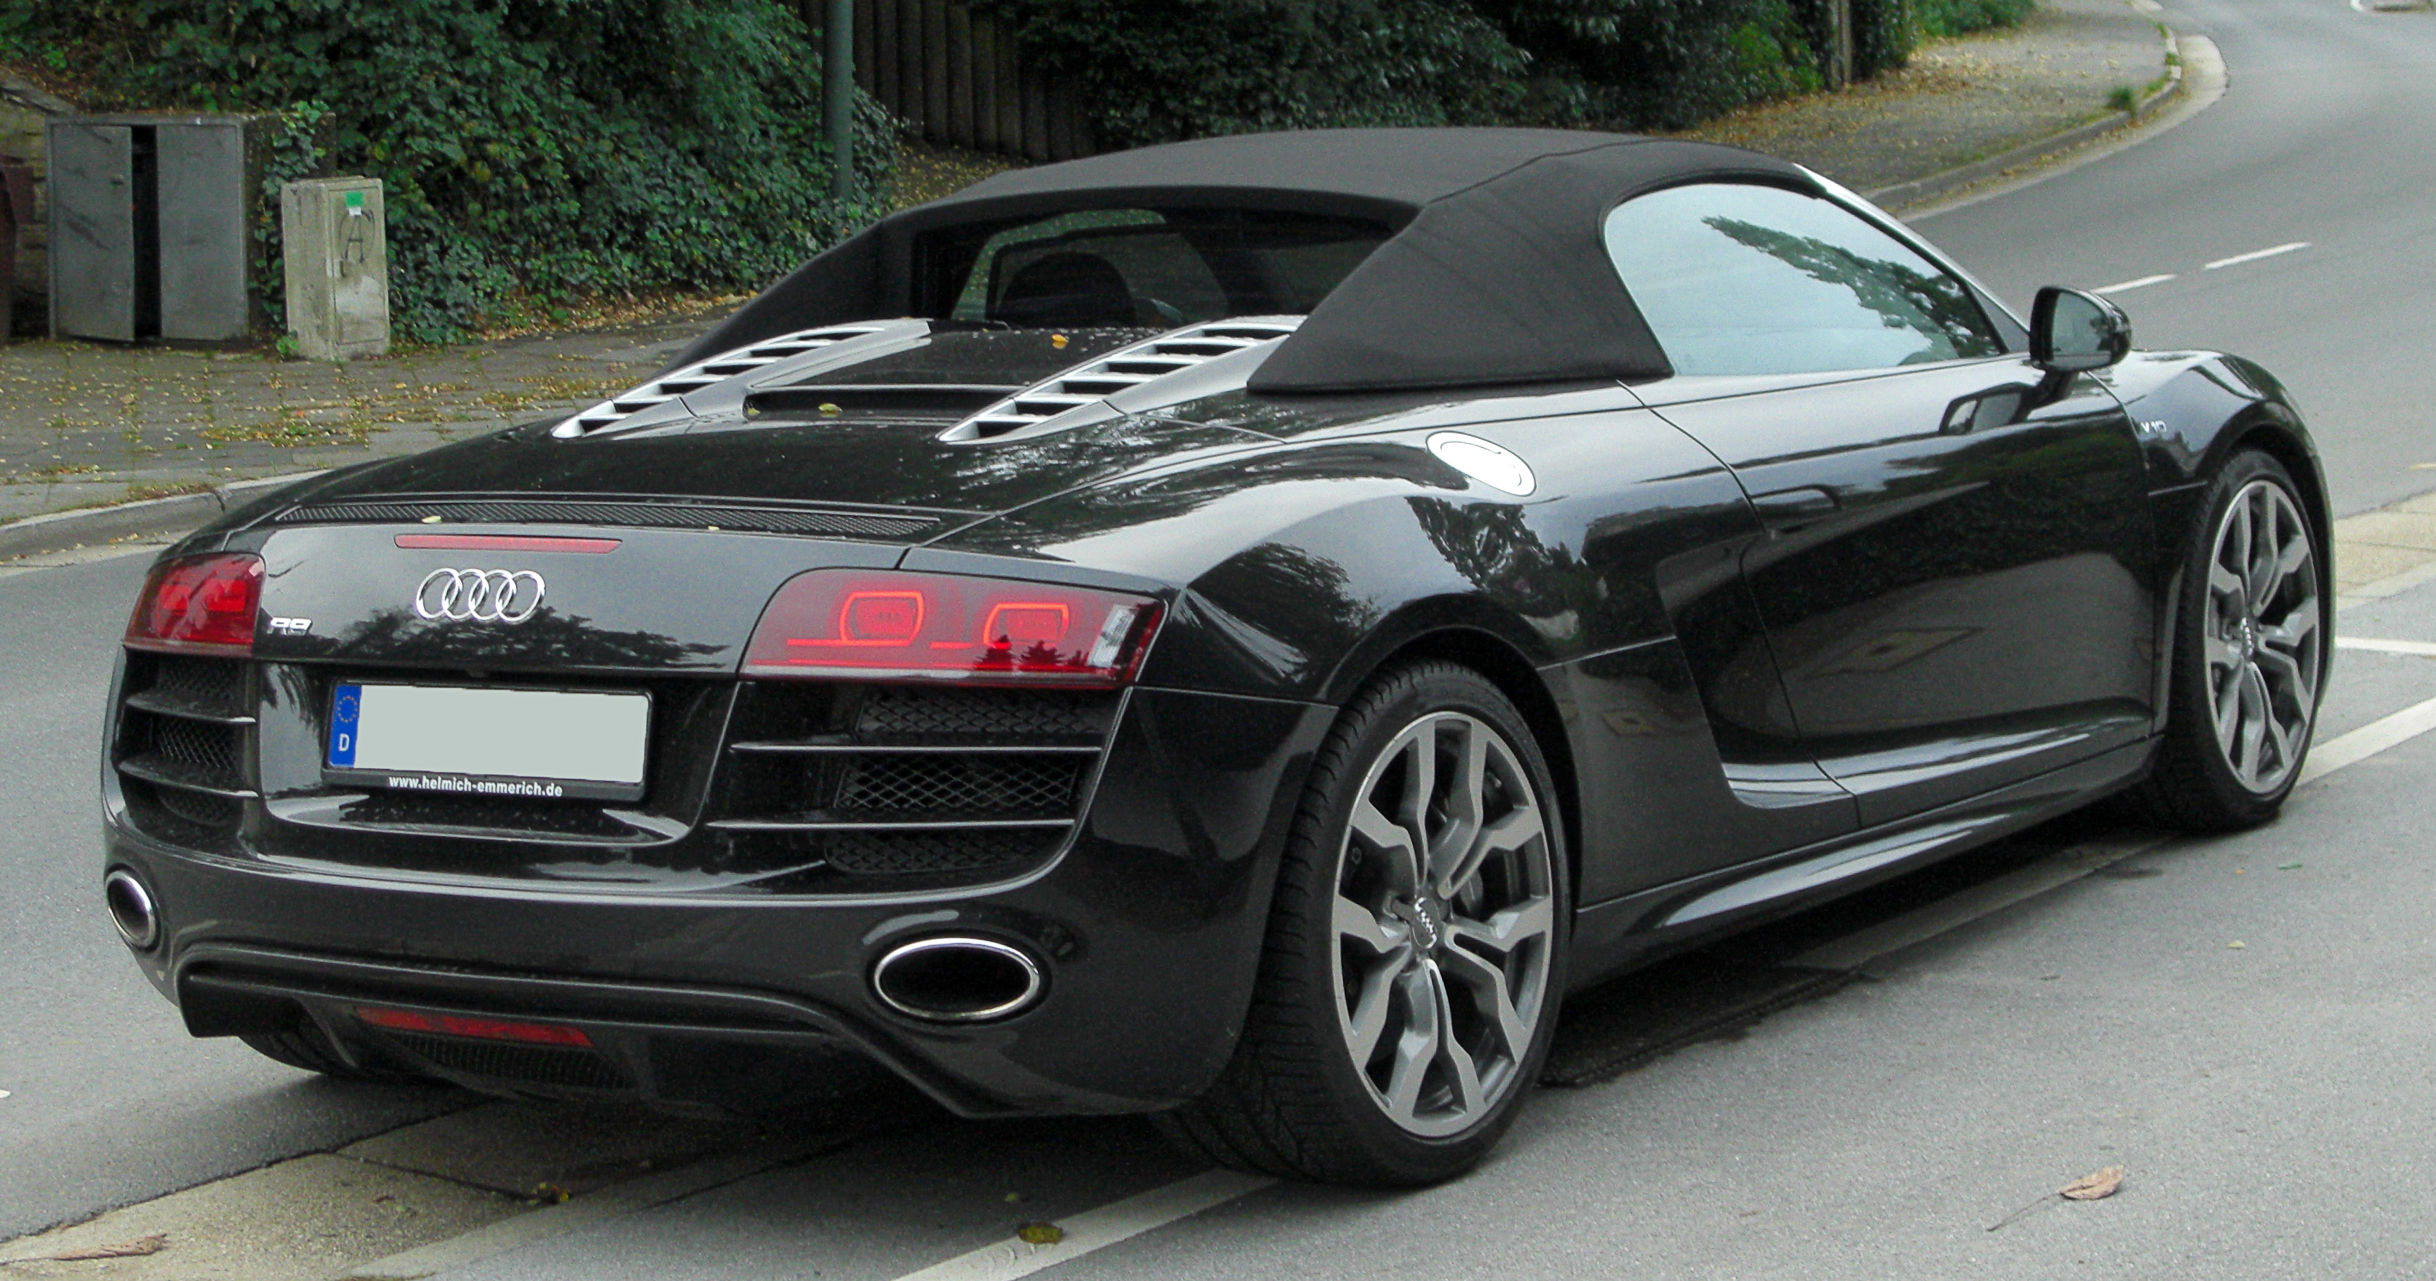 file audi r8 spyder v10 rear wikimedia commons. Black Bedroom Furniture Sets. Home Design Ideas